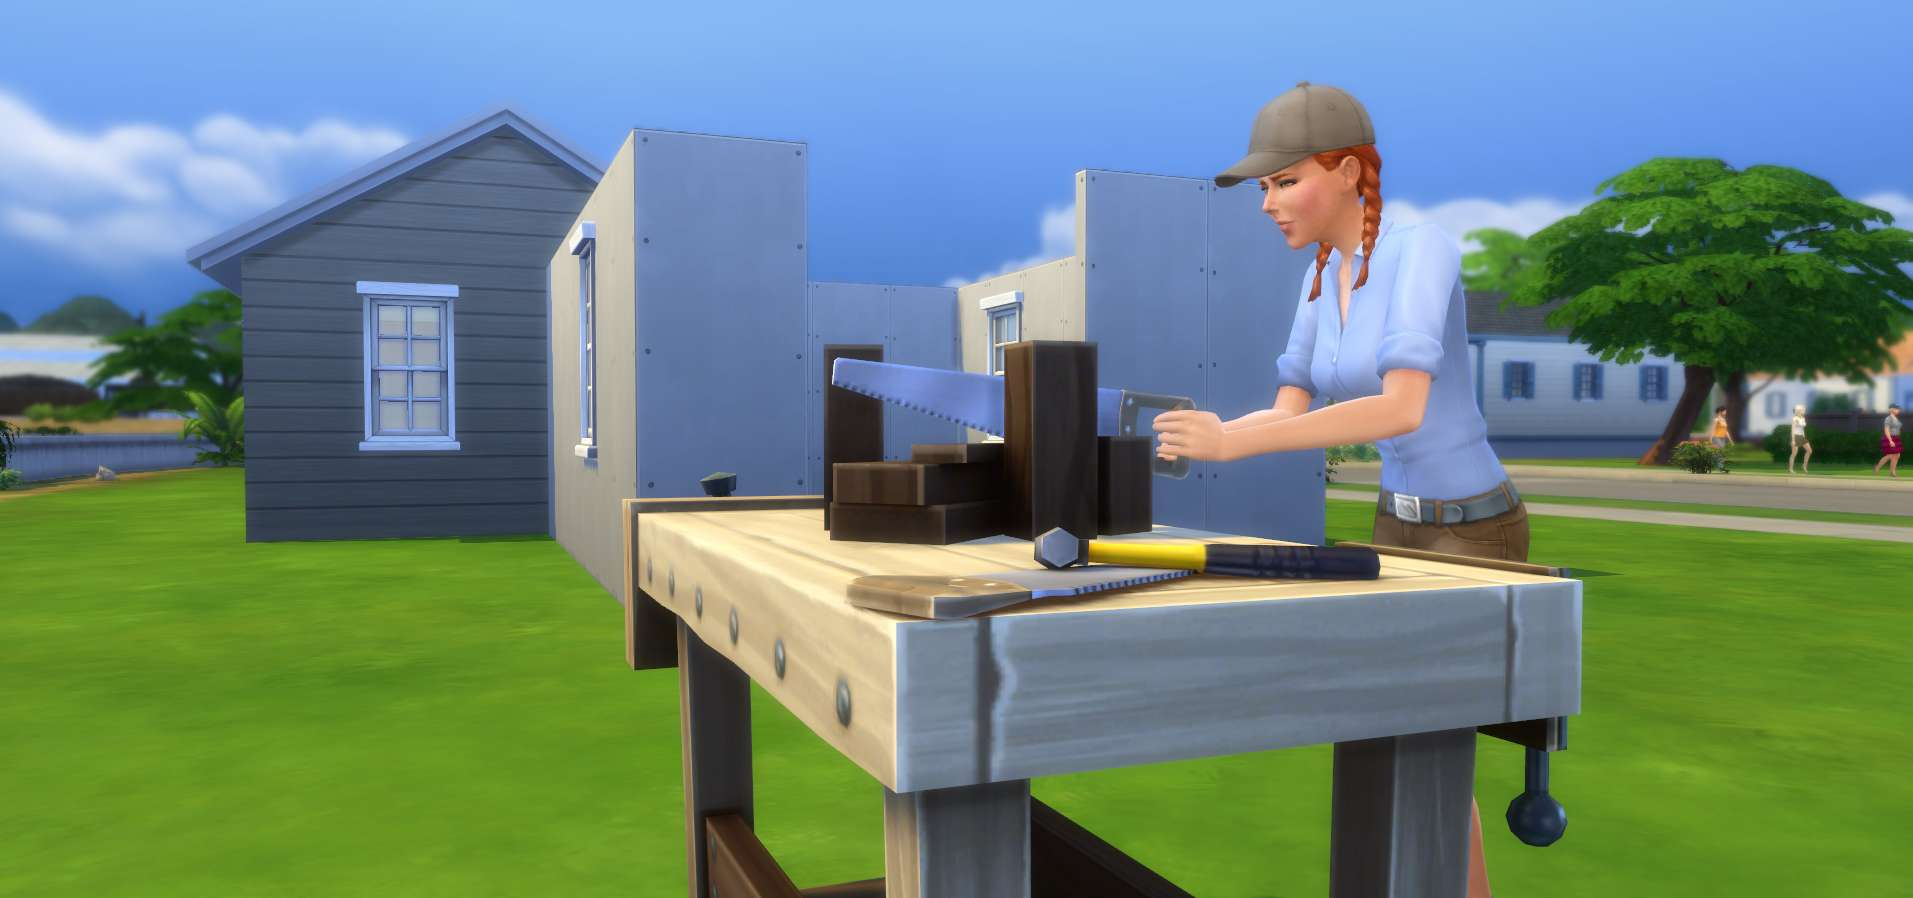 sims 4 build mode tutorials for houses and landscaping build a house in sims 4